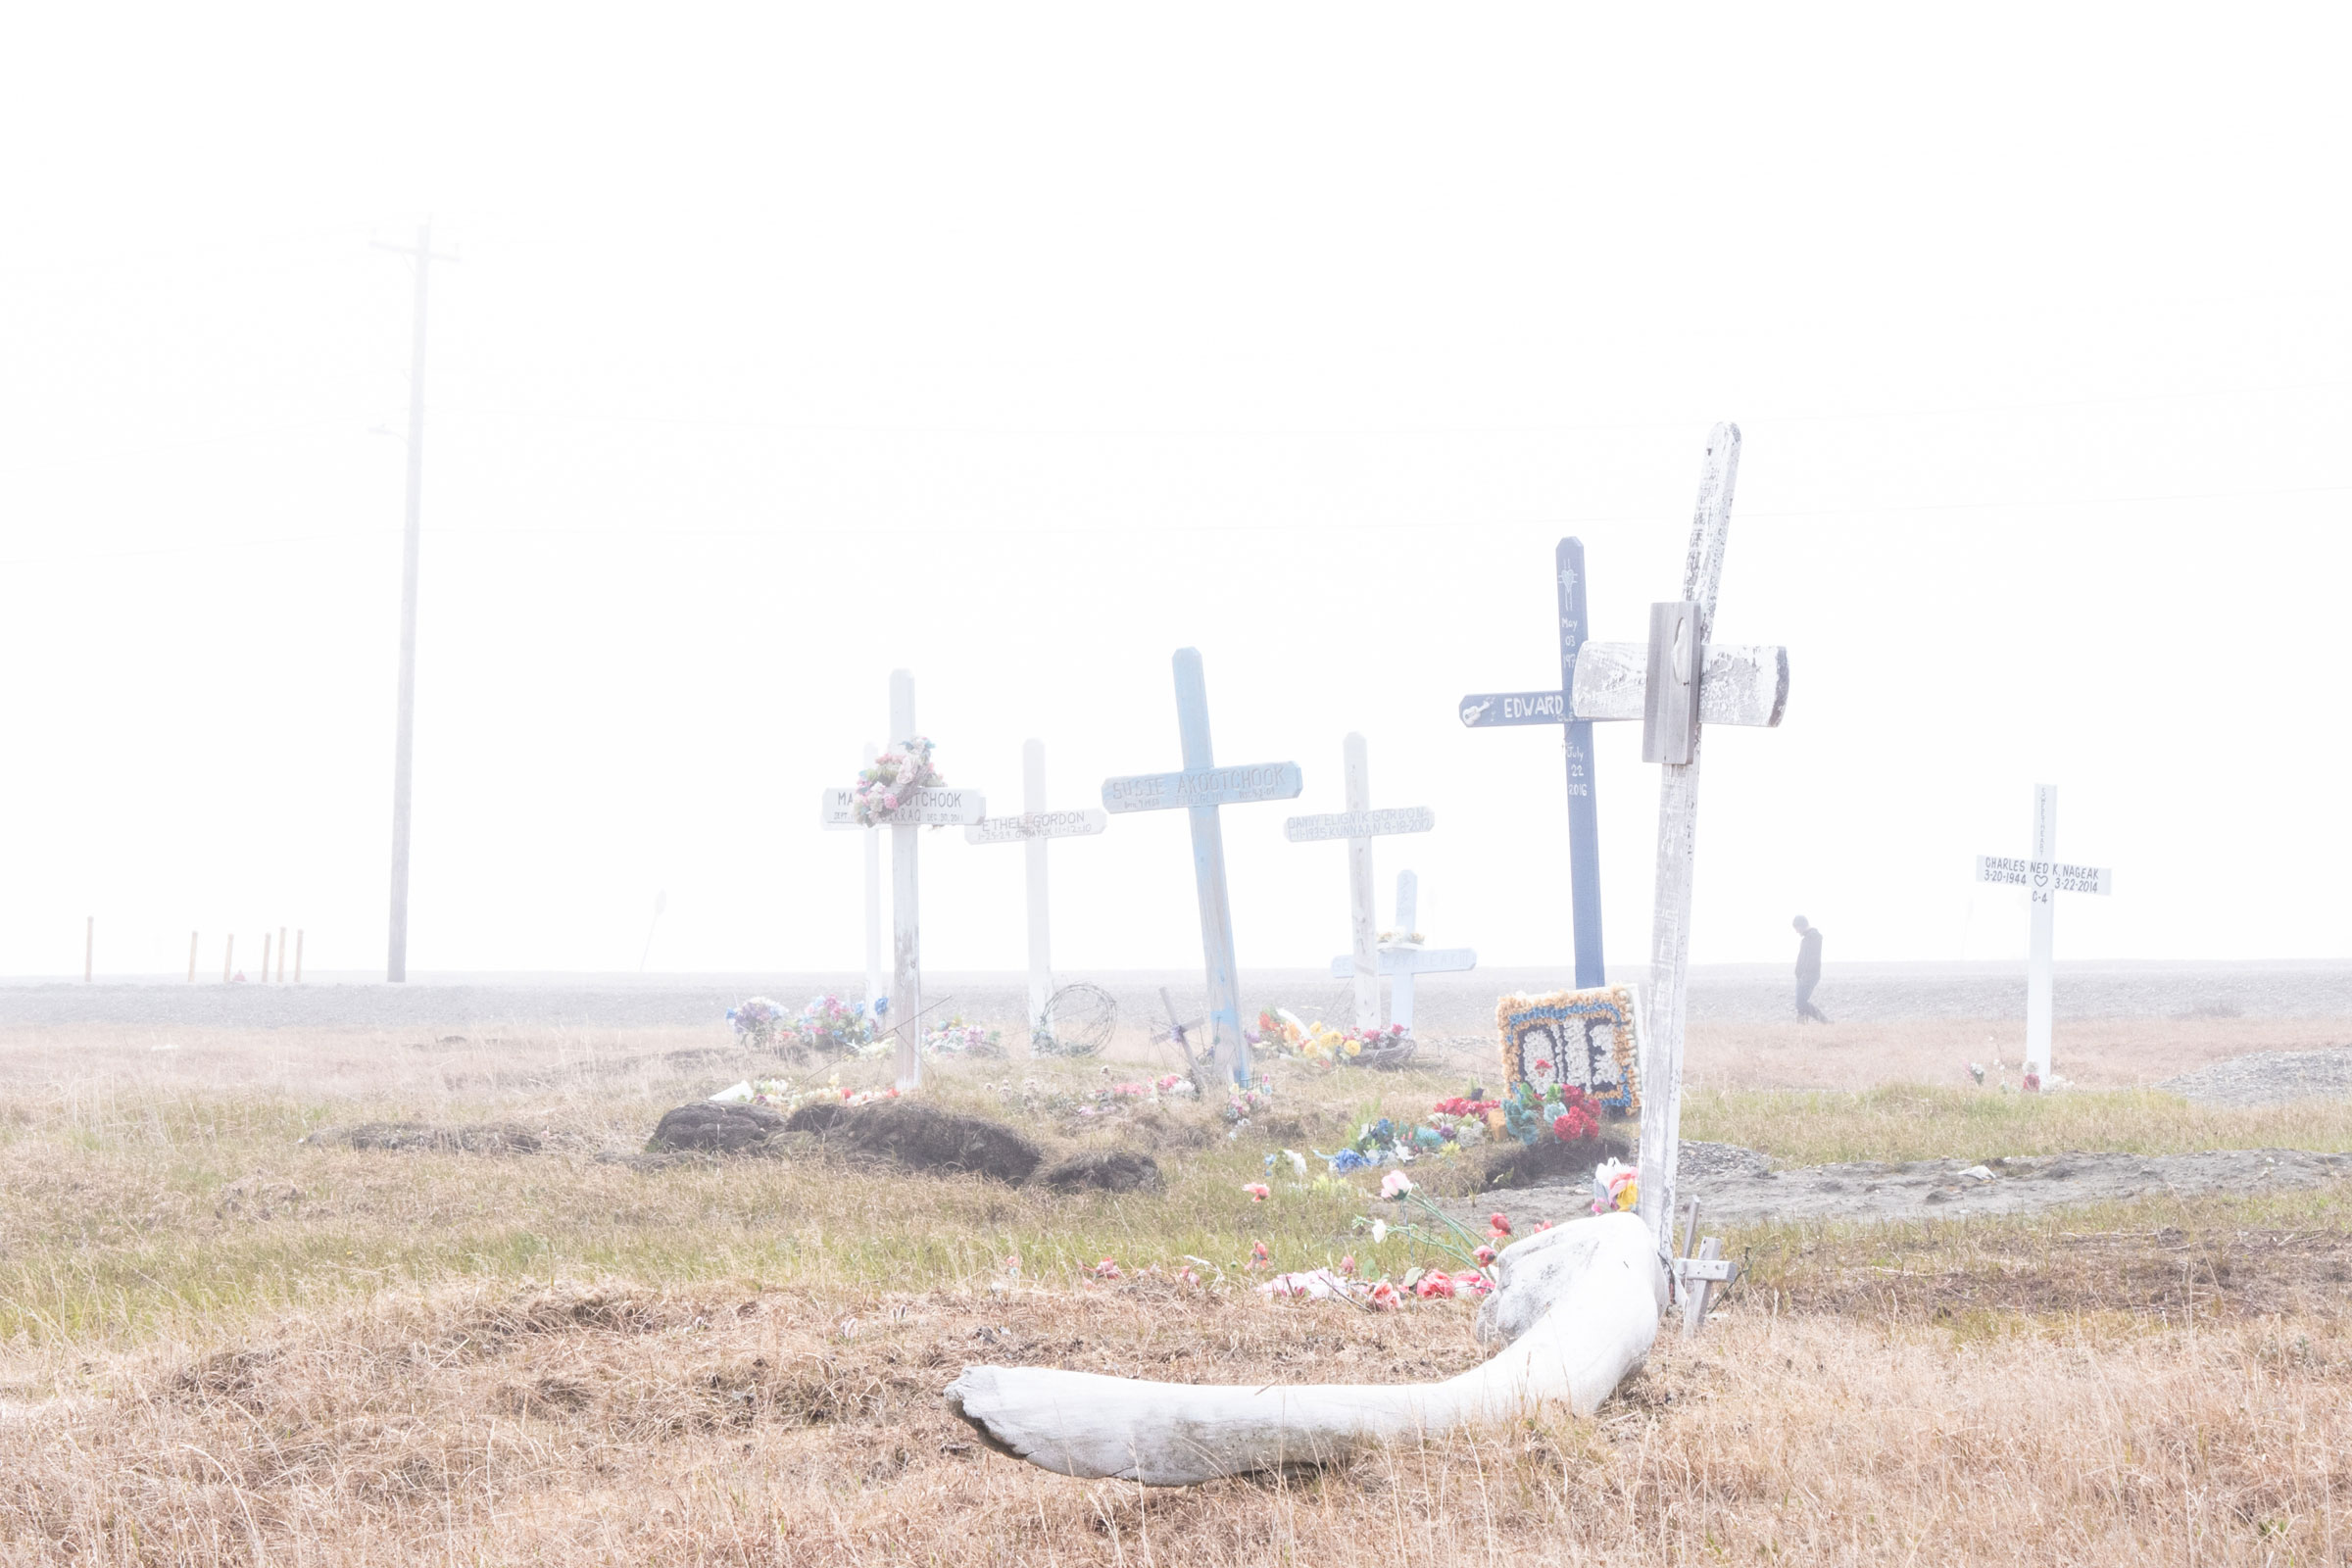 A graveyard in the Inupiat community of Kaktovik. Peter Mather